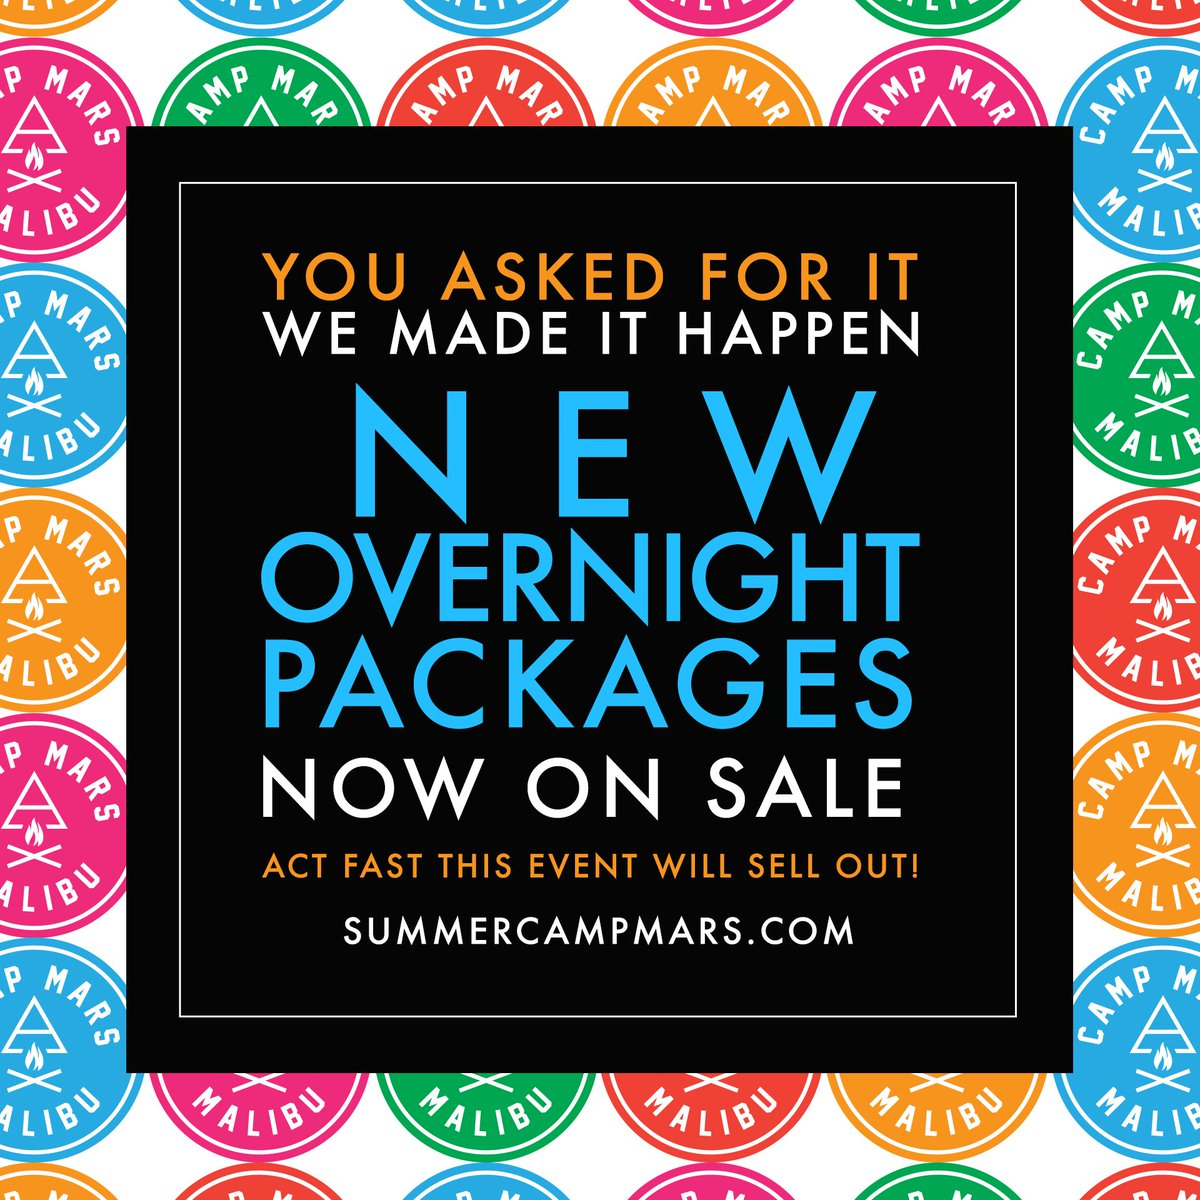 RT @30SECONDSTOMARS: Your chance to join us this August is here. New #CampMars Overnight Packages NOW ON SALE! | https://t.co/pefBVy7Wgb ht…